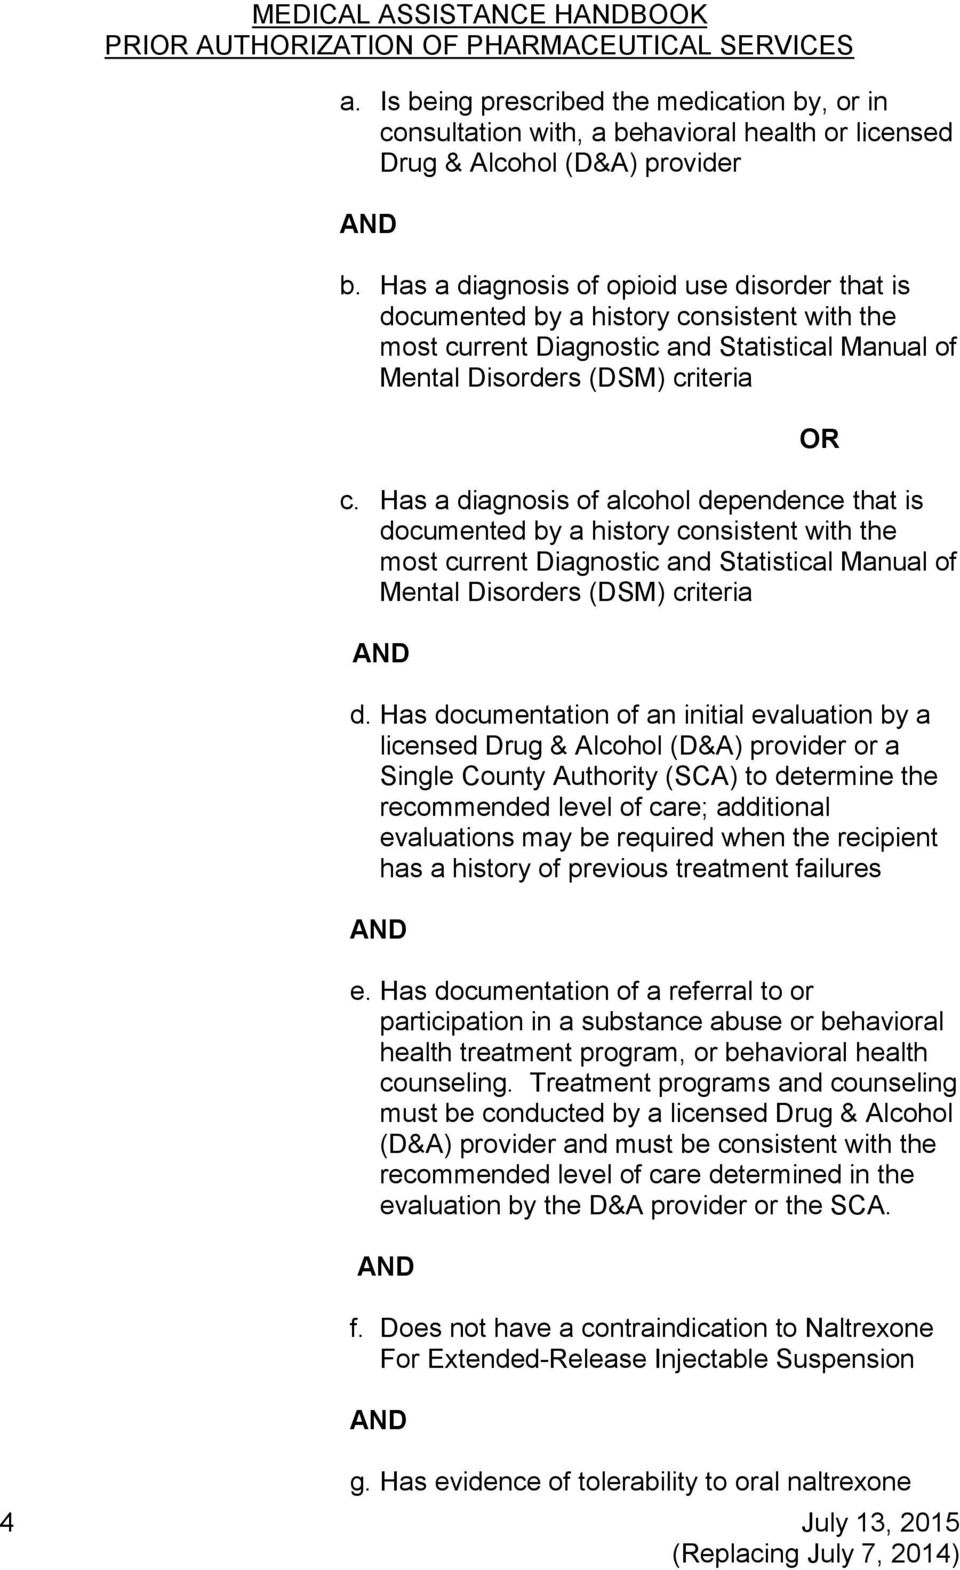 Has a diagnosis of alcohol dependence that is documented by a history consistent with the most current Diagnostic and Statistical Manual of Mental Disorders (DSM) criteria d.